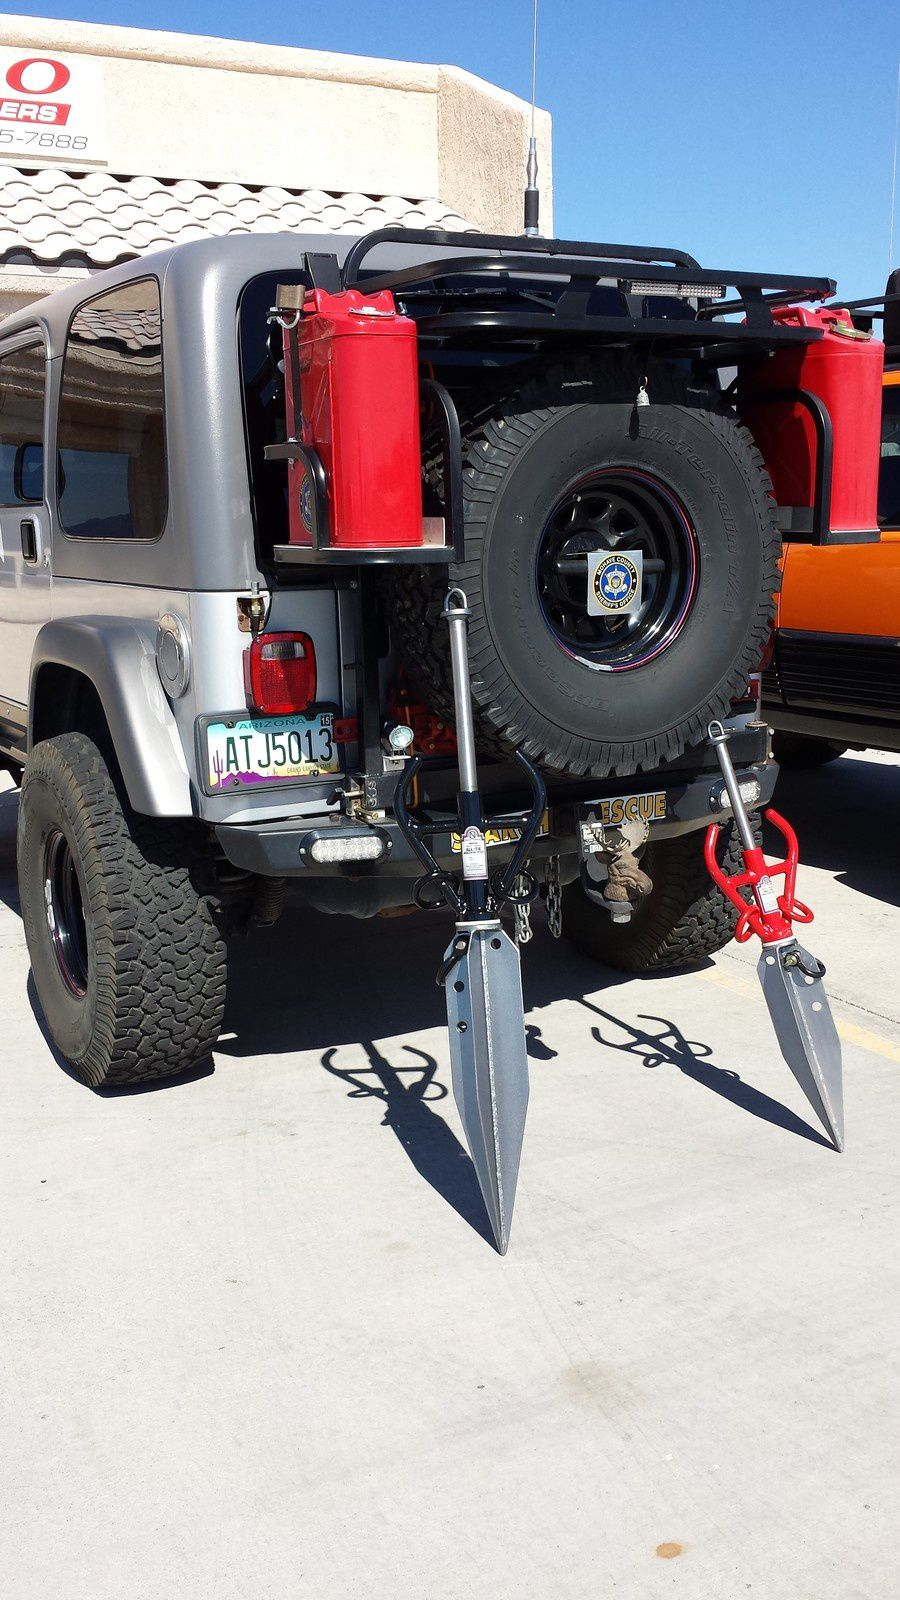 All Tie Anchor - Good-N-Useful Supply -portable anchoring device with slide-hammer - drive cross - winching stranded desert mud 4x4 recovery